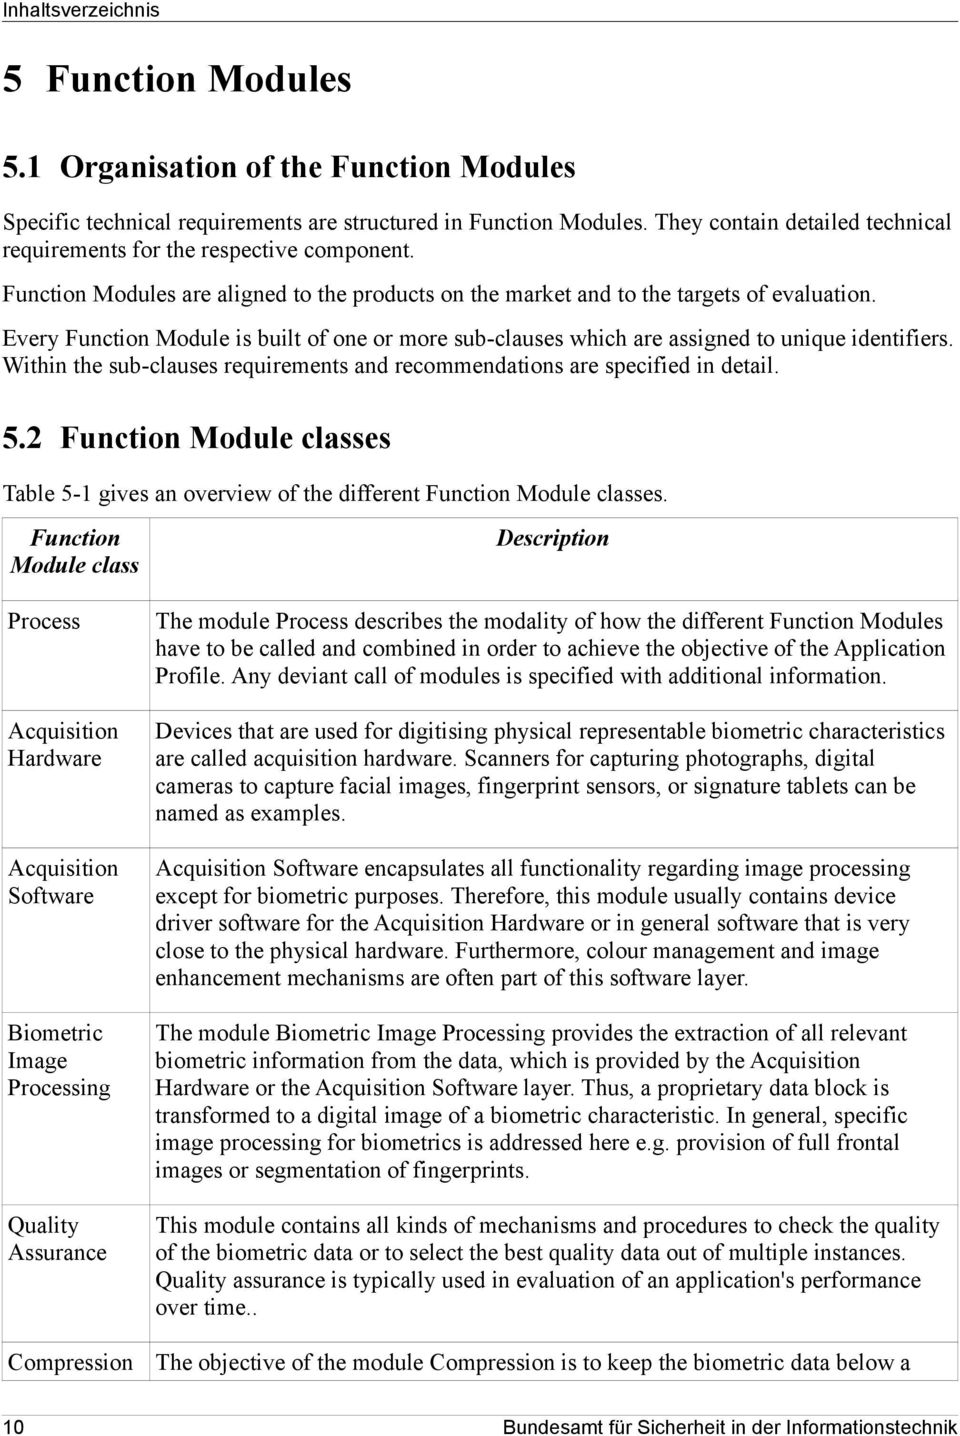 Every Function Module is built of one or more sub-clauses which are assigned to unique identifiers. Within the sub-clauses requirements and recommendations are specified in detail. 5.